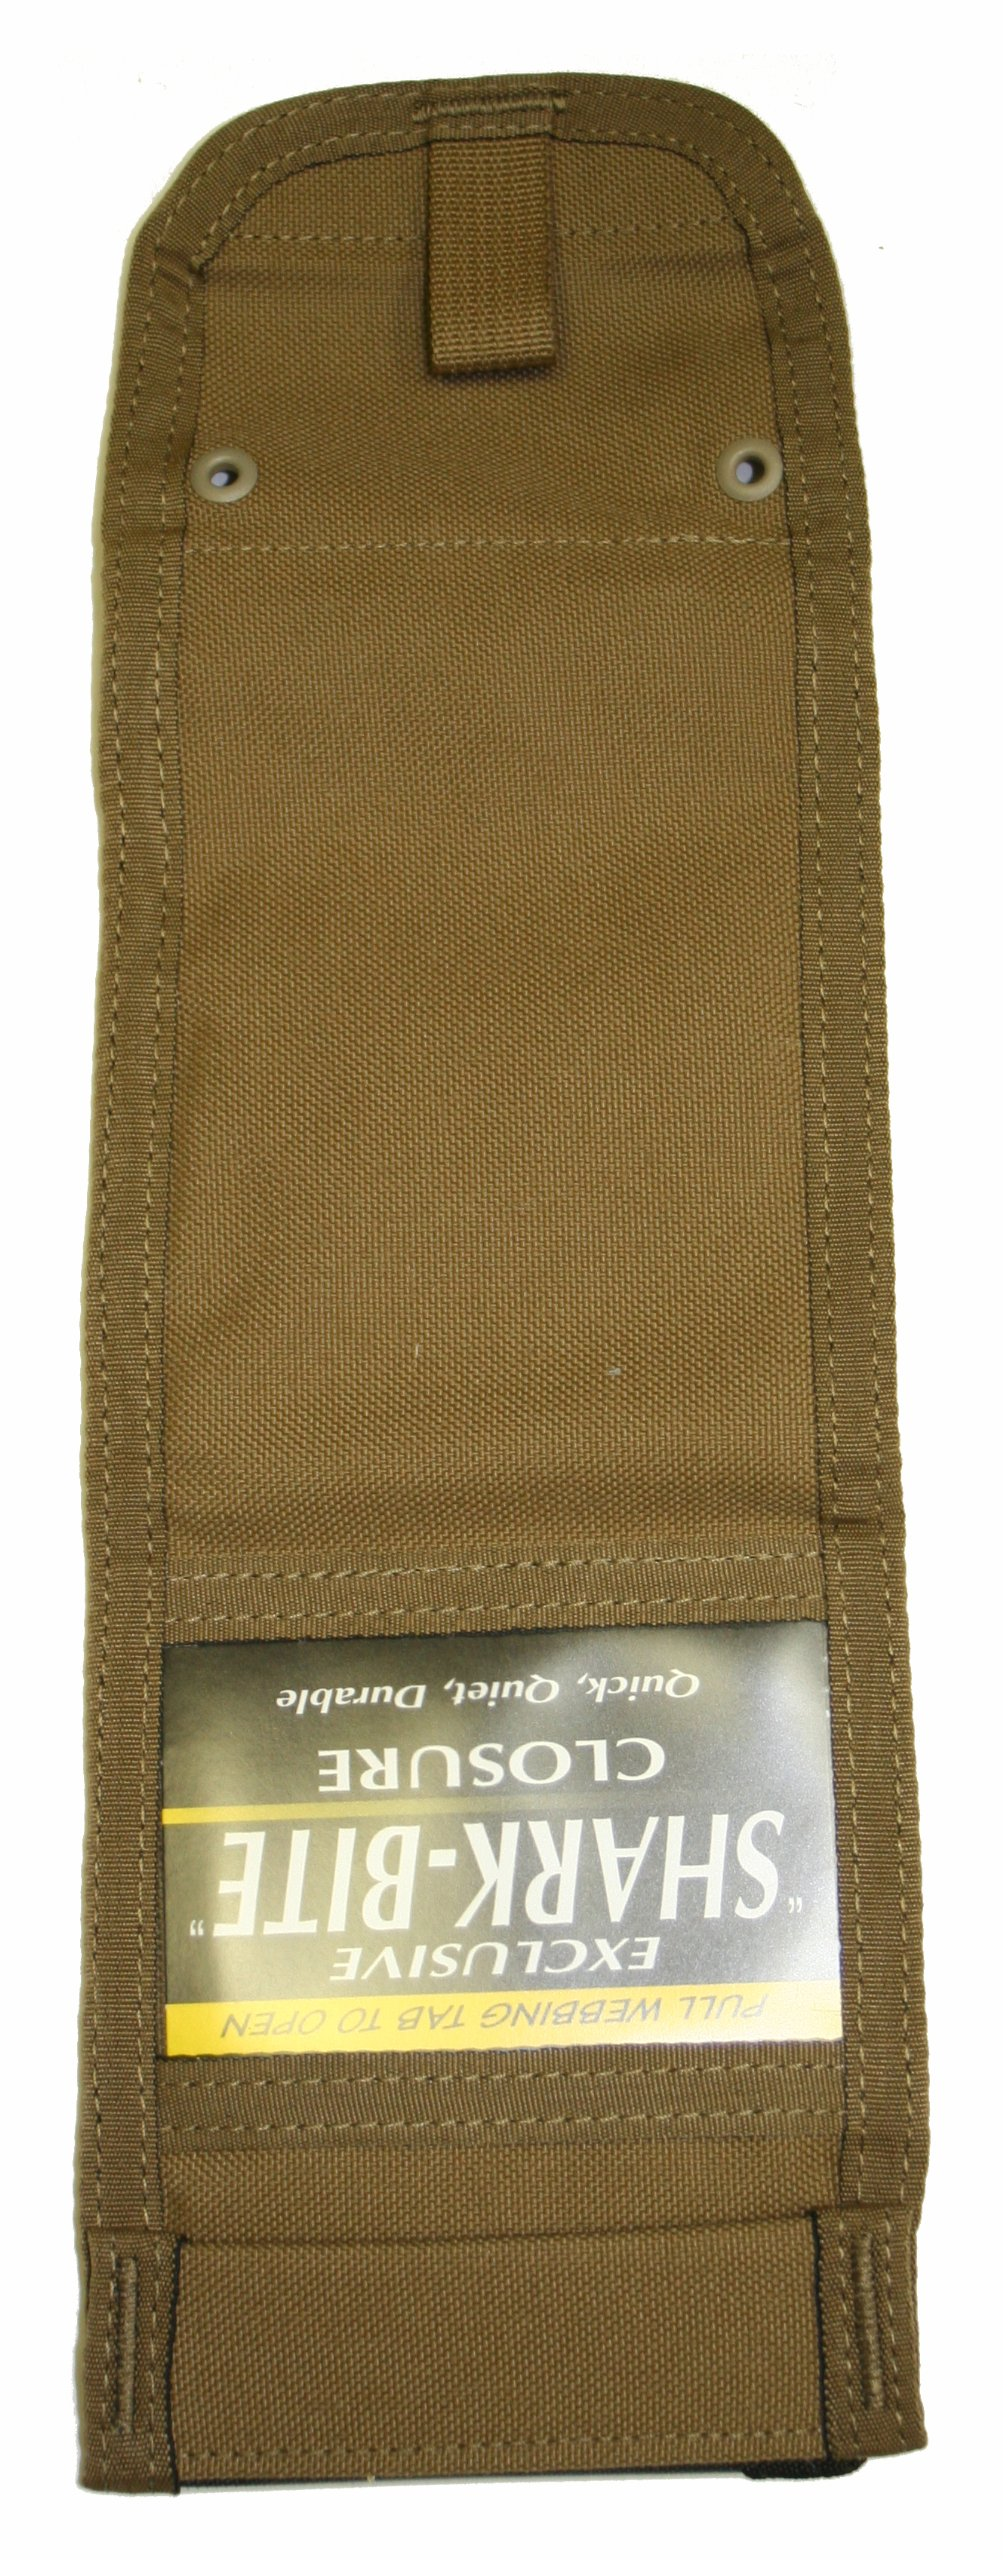 Spec-Ops Brand T.H.E. Wallet (Coyote Brown)